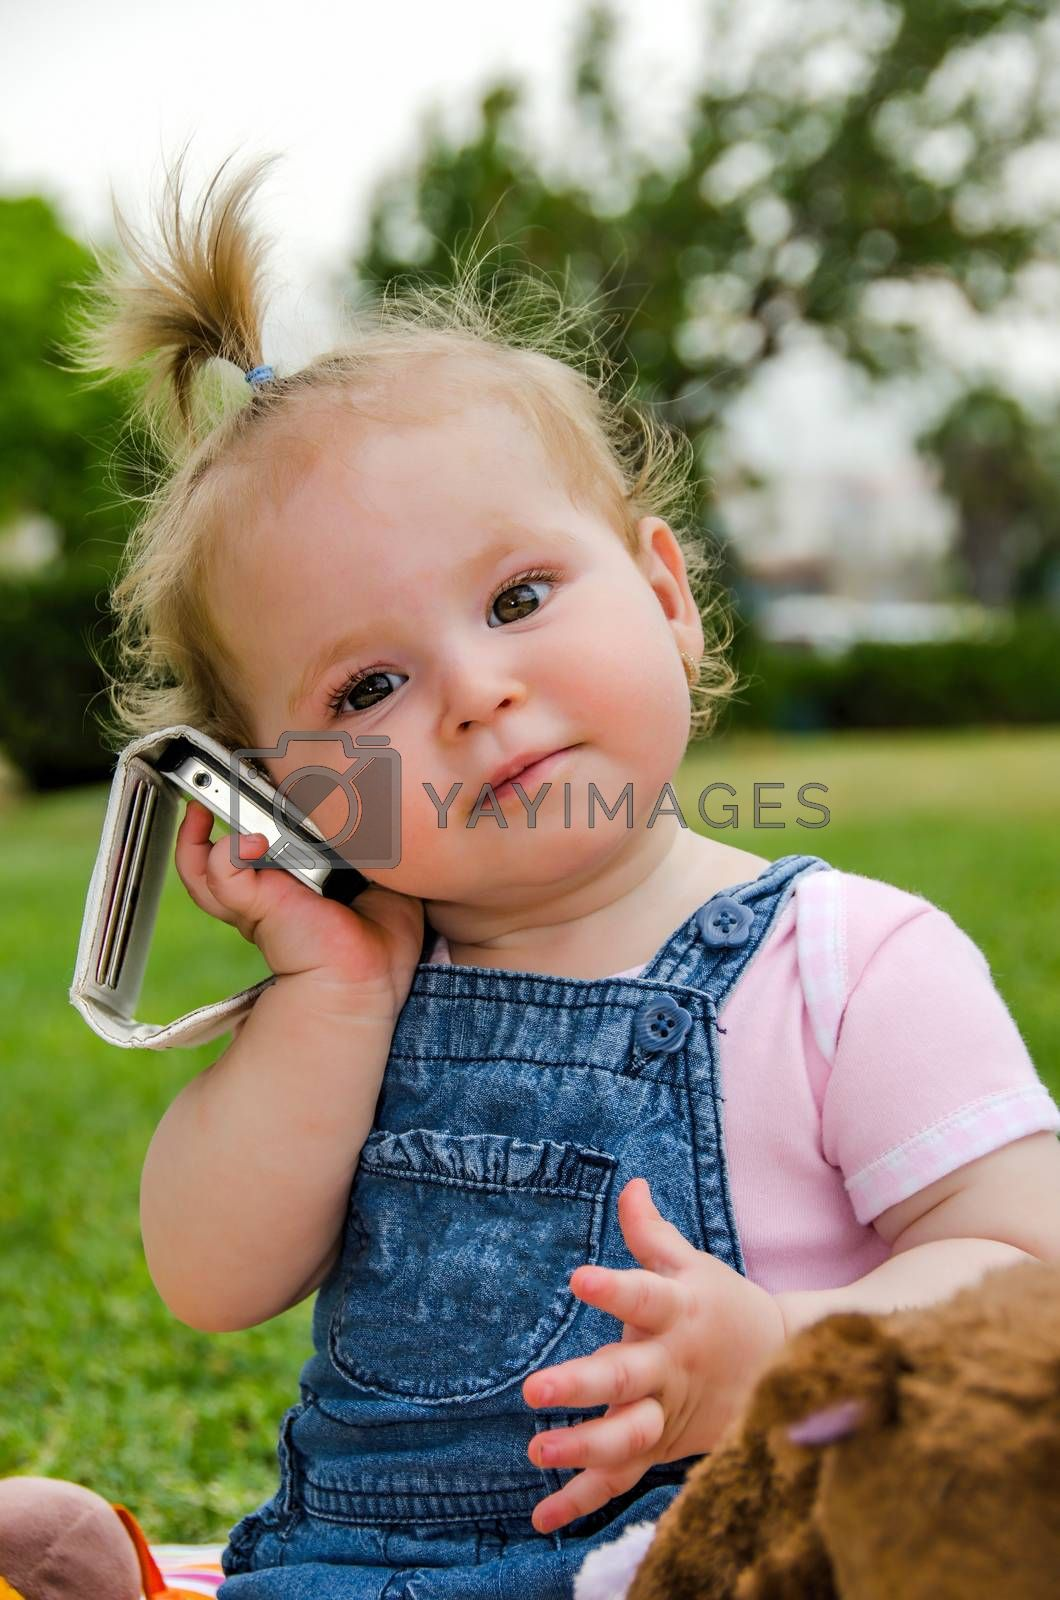 Child took the cell phone she likes to listen to music